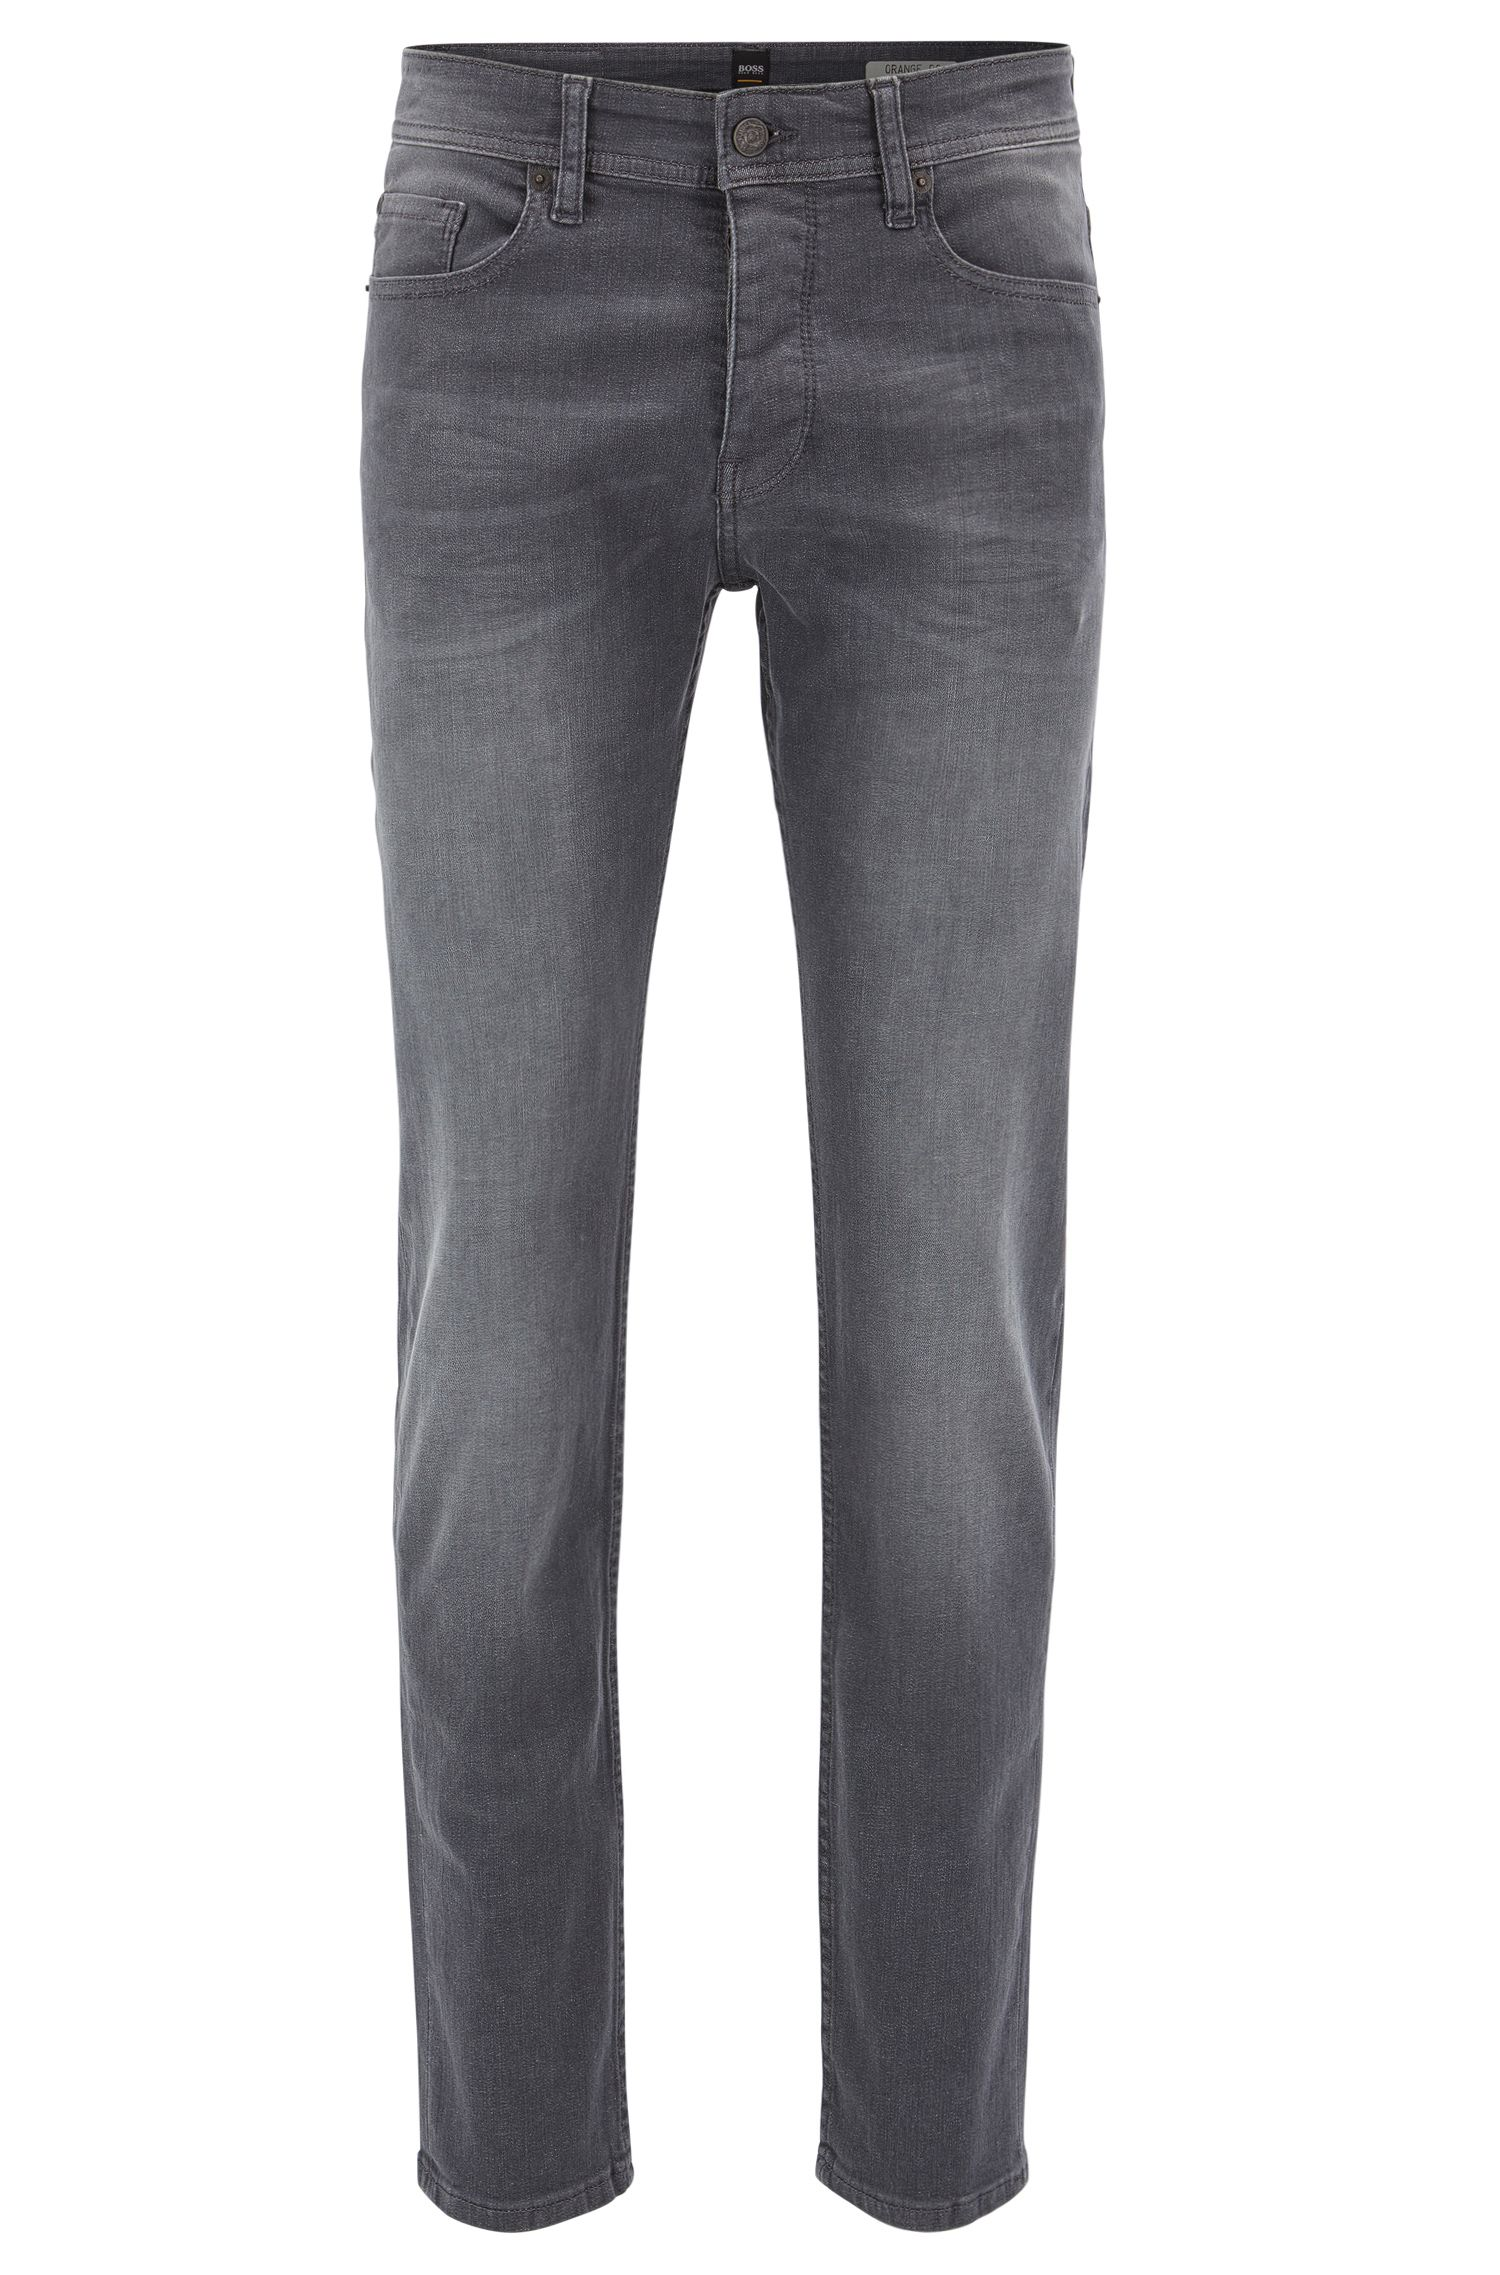 Jeans Tapered Fit en denim super stretch gris